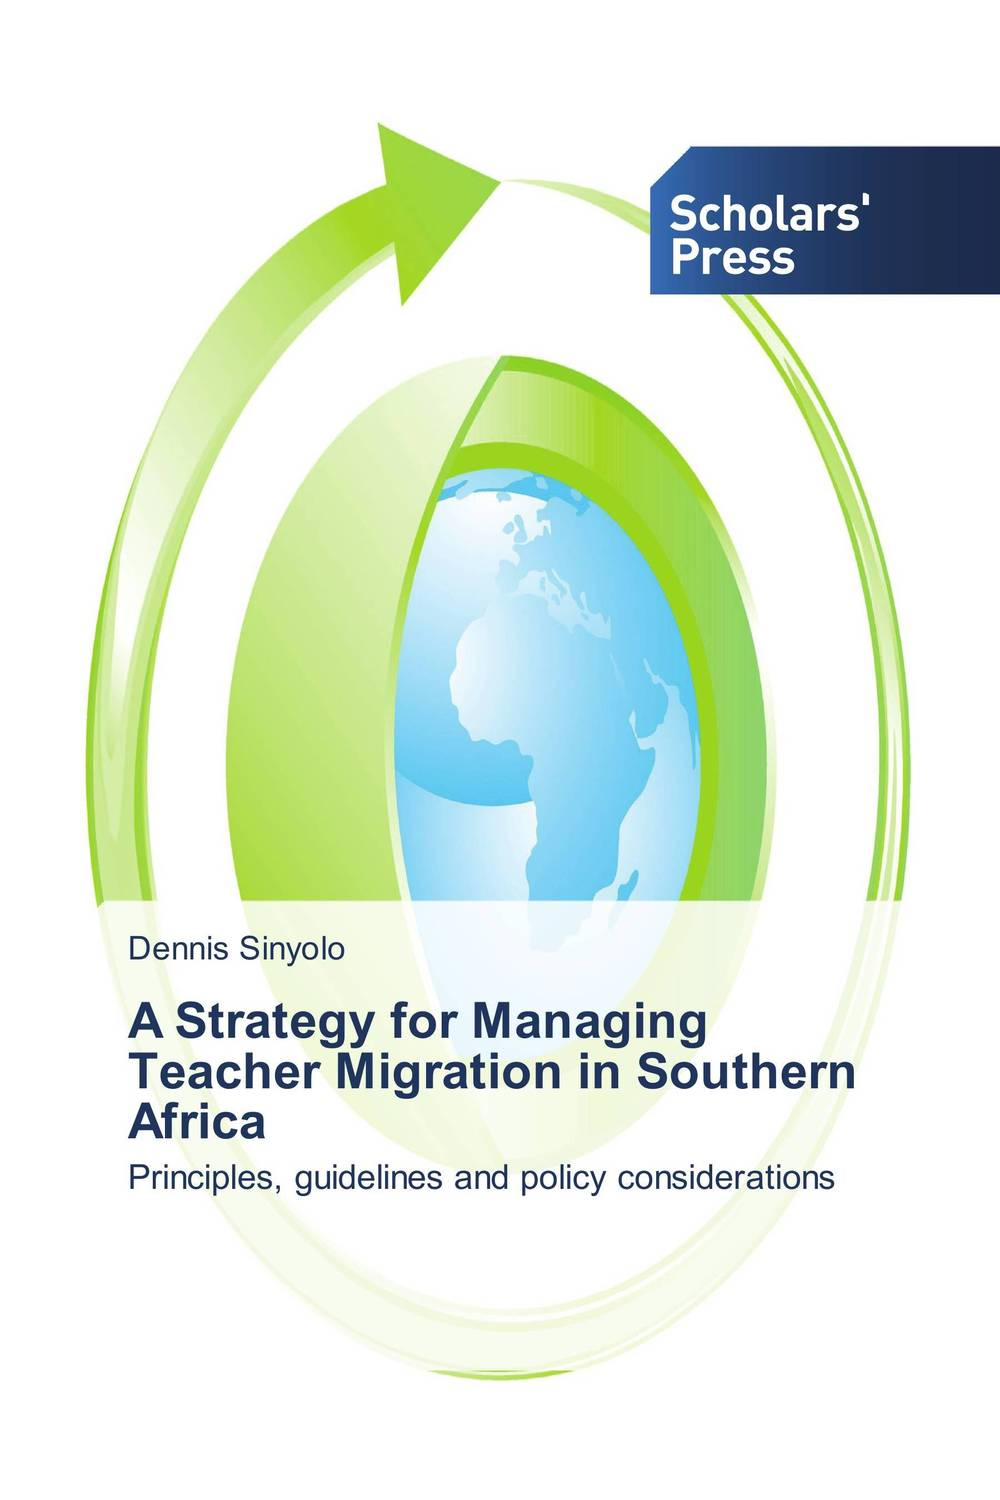 A Strategy for Managing Teacher Migration in Southern Africa